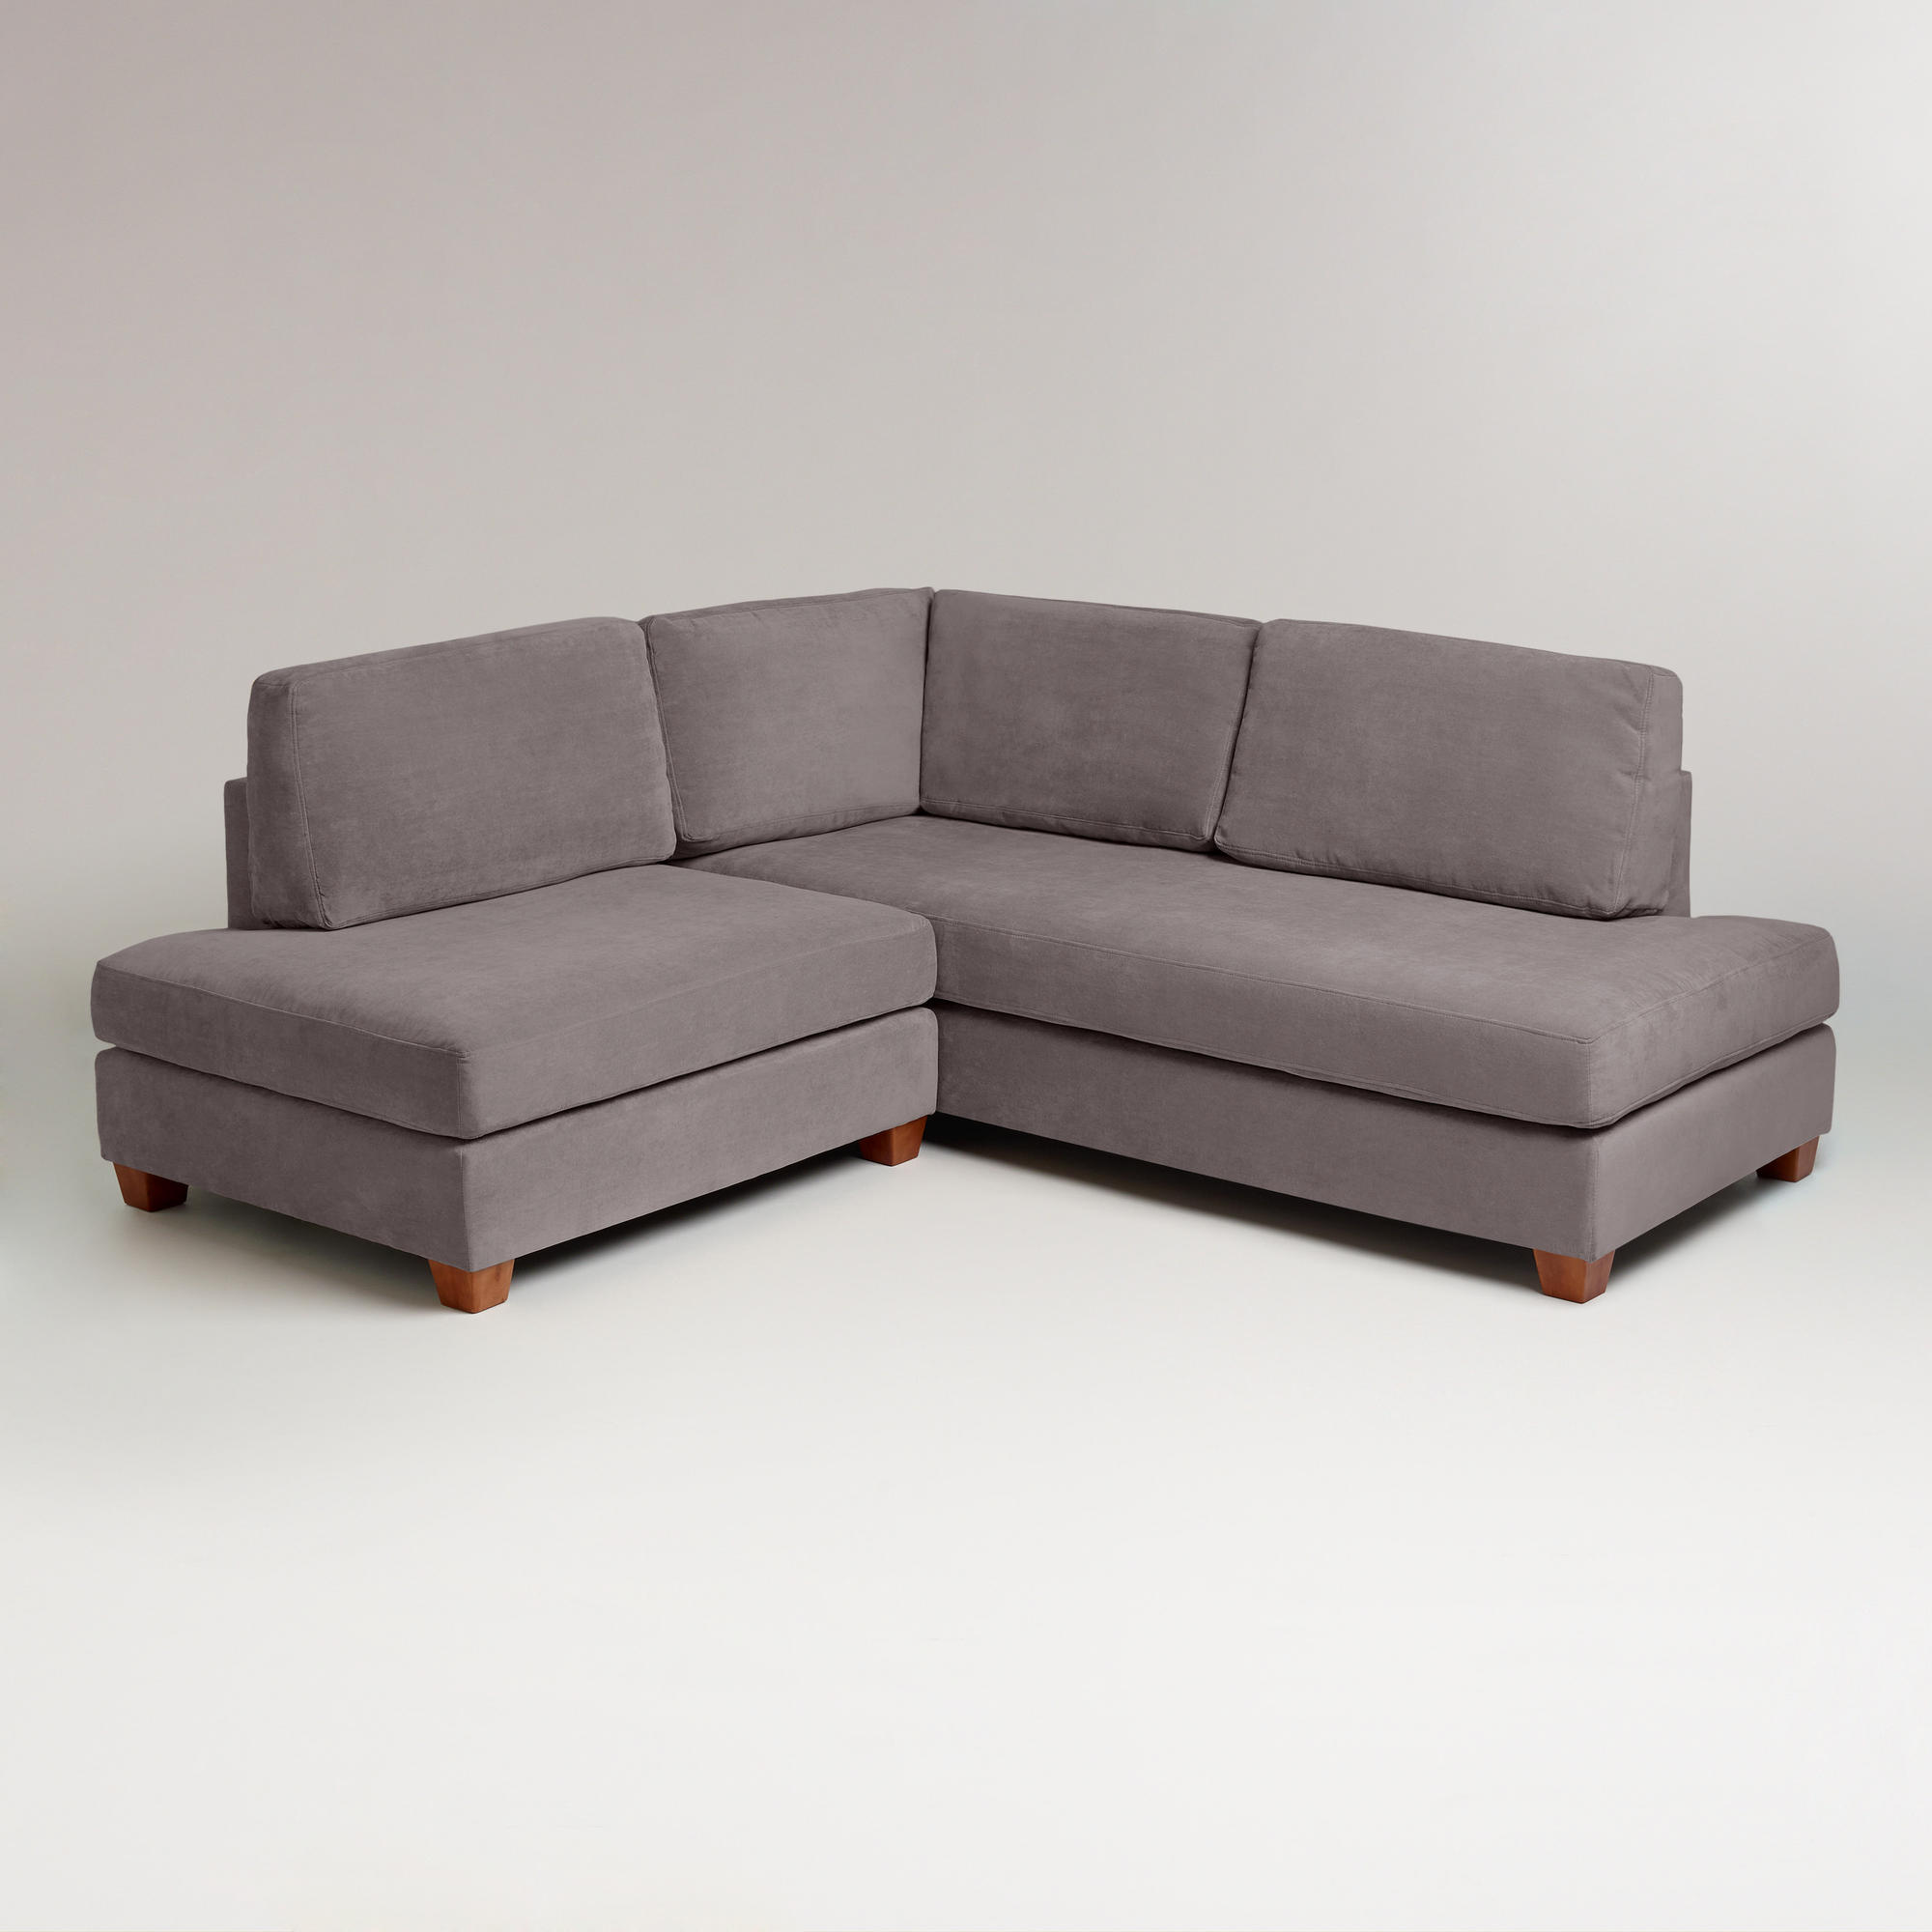 apartment size sectional sofa with chaise garage good looking small sectional sofas for apartments 21 beautiful apartment NRKOSZS